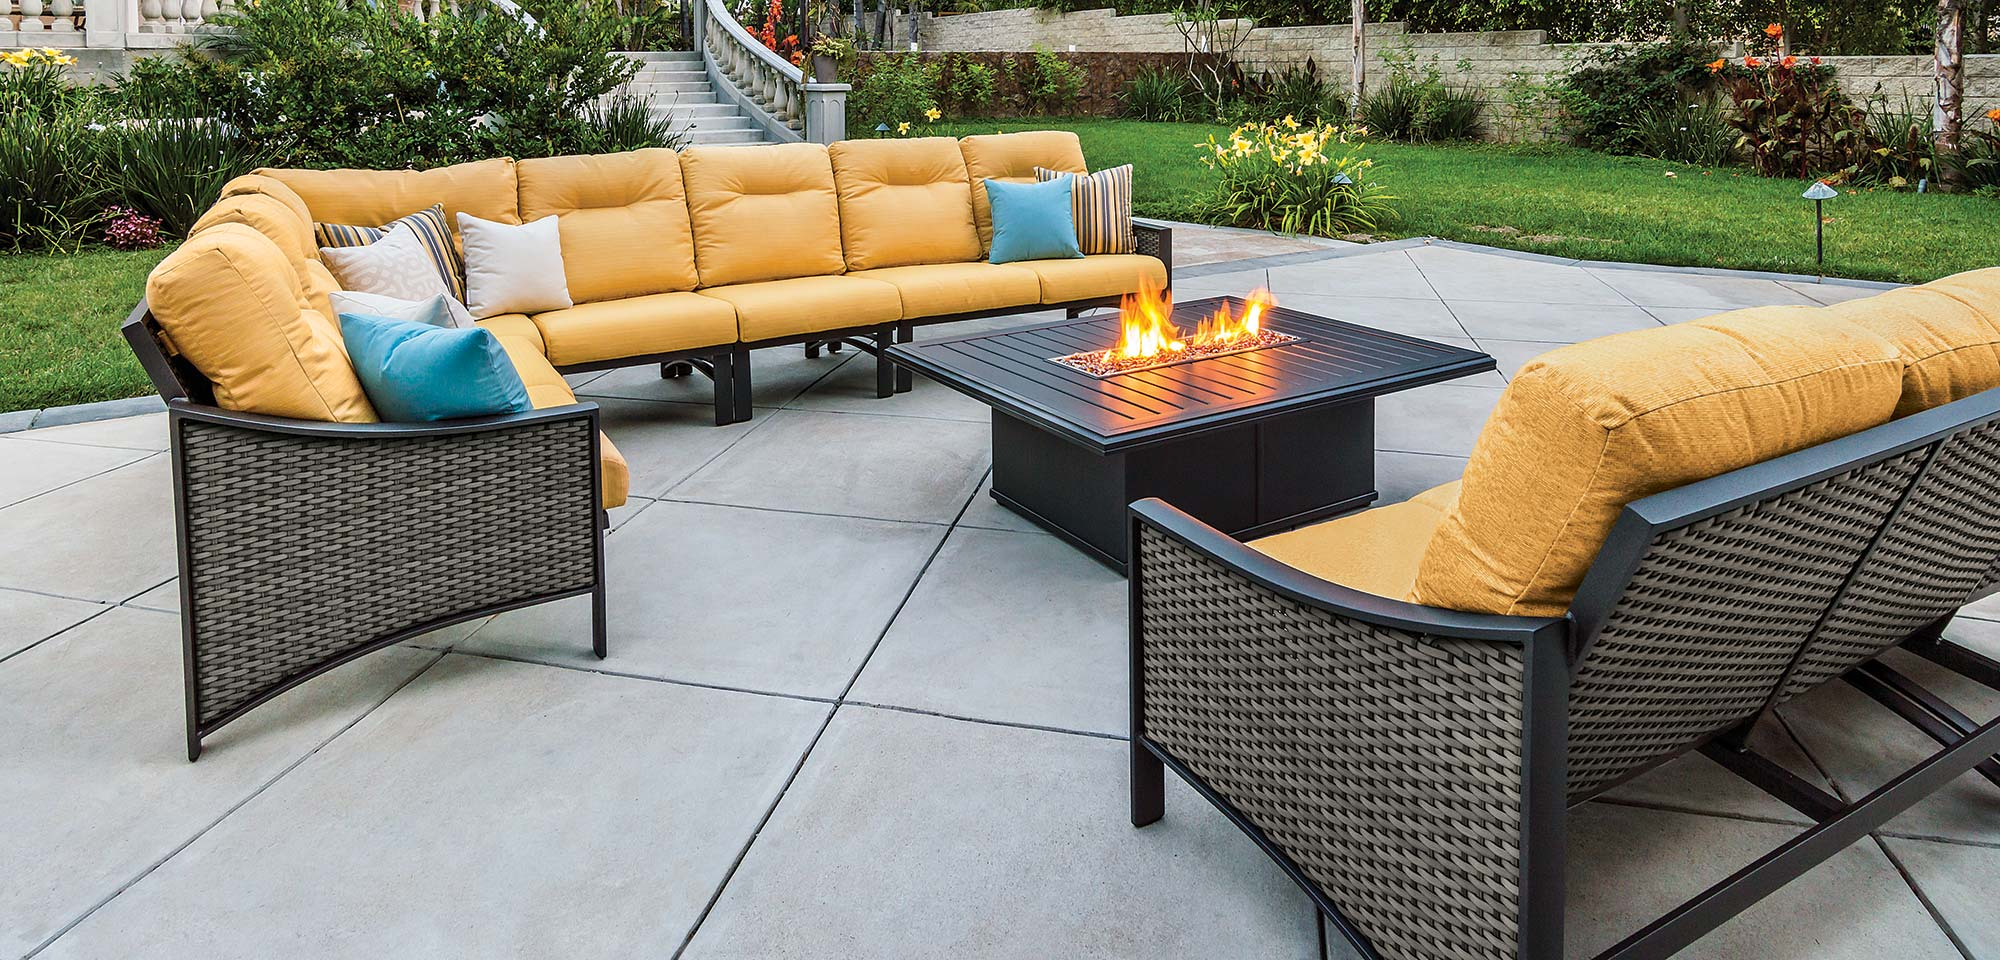 Patio furniture outdoor patio furniture sets for Patio furniture pictures ideas